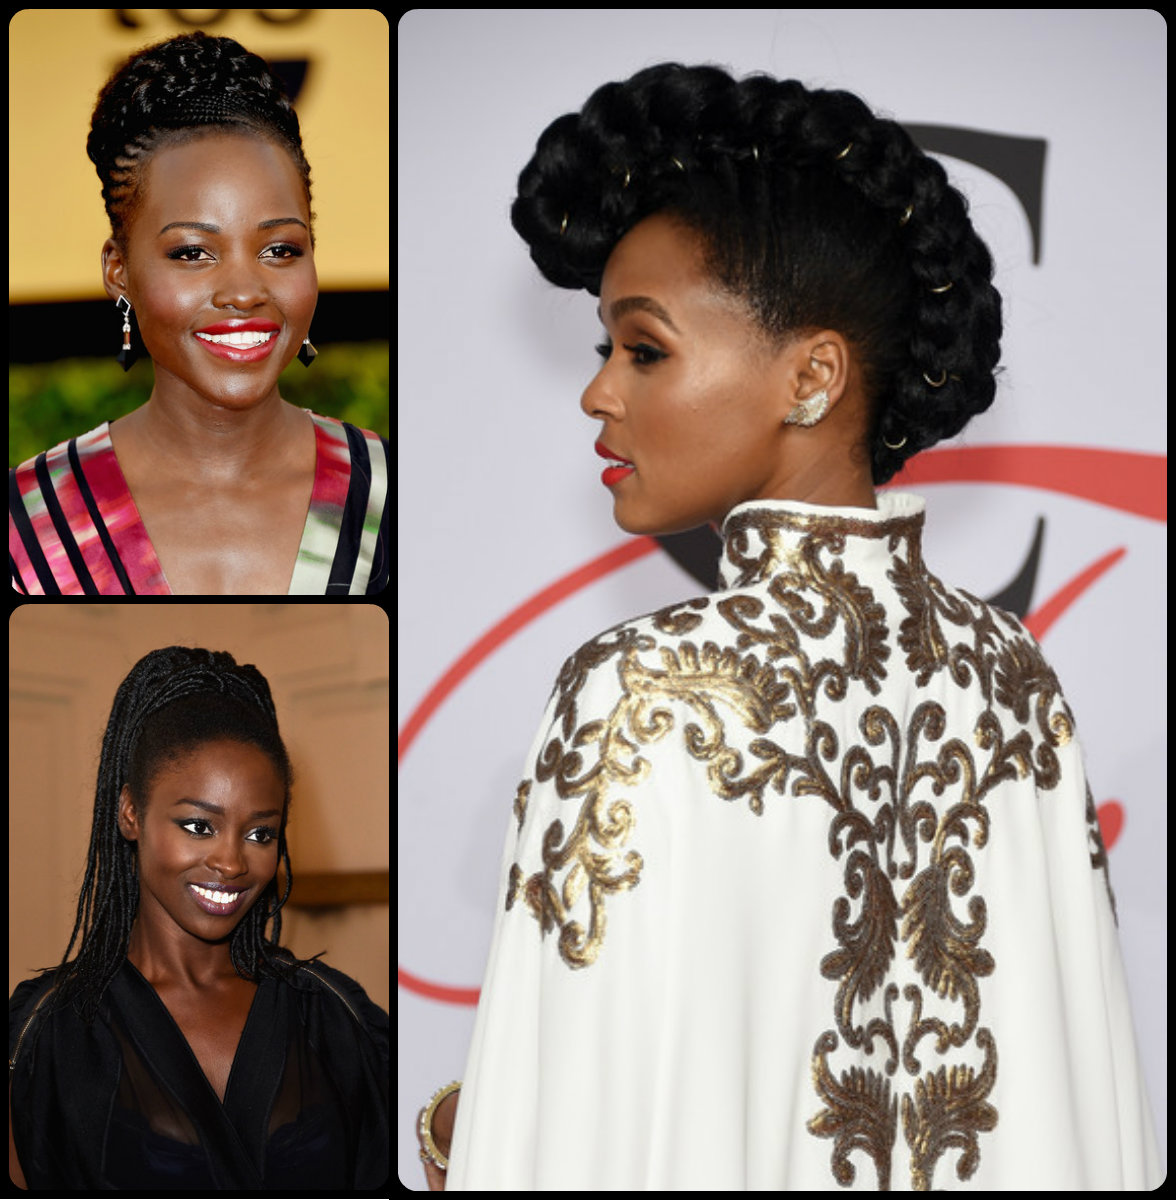 Enjoyable Black Women Braided Updos 2015 Summer Hairstyles 2016 Hair Short Hairstyles Gunalazisus